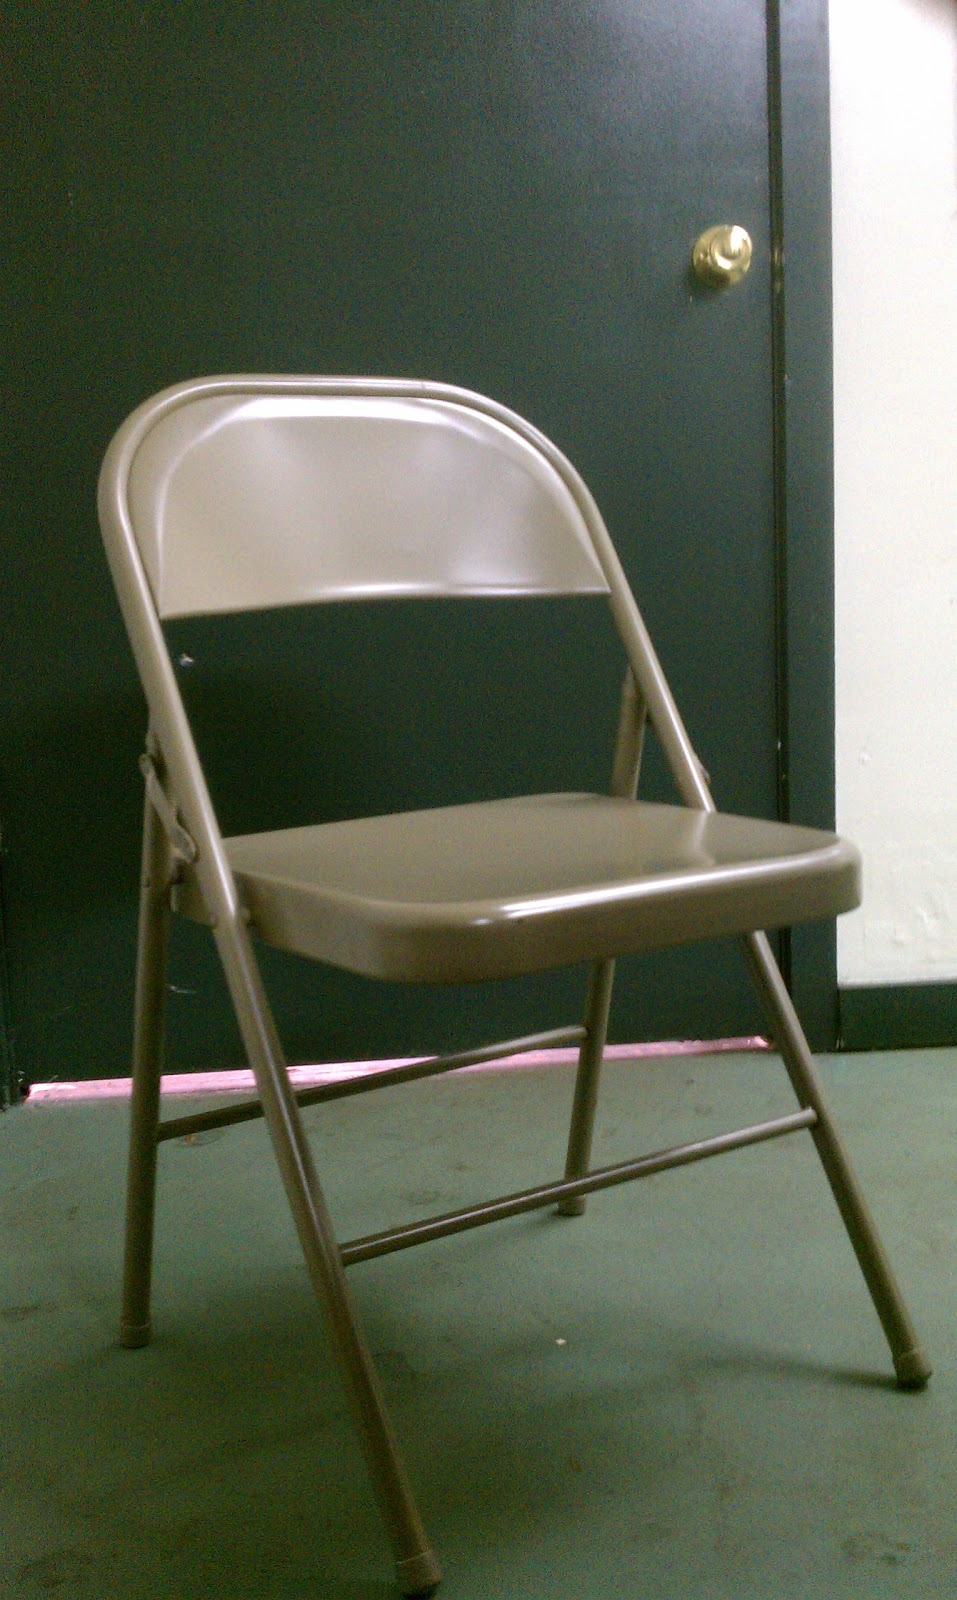 Uncomfortable chairs - Ruminations of a Rudd